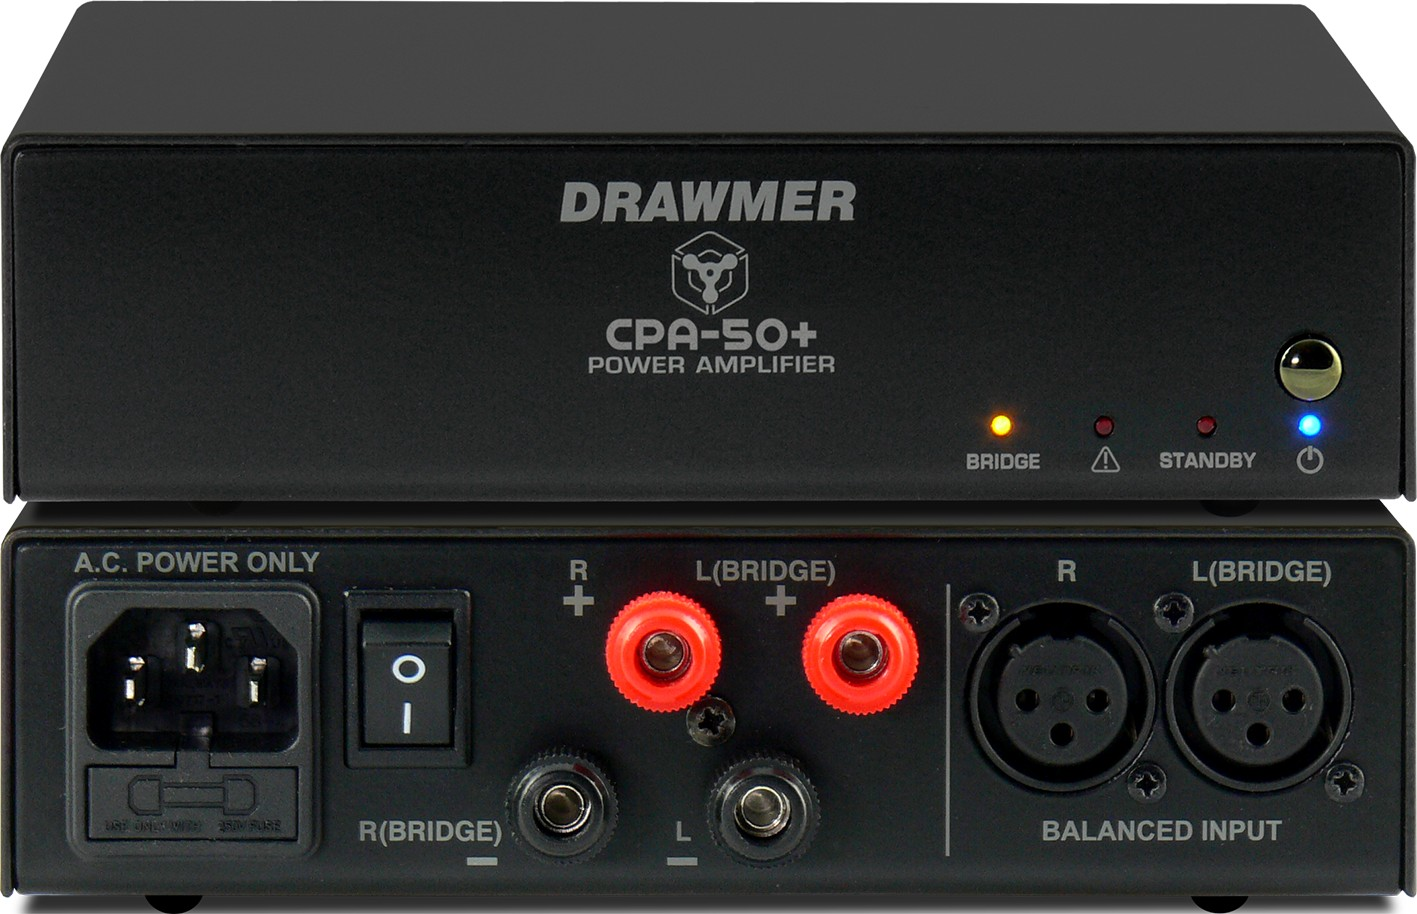 Drawmer Electronics Cpa 50 Power Amplifier Audio Preamplifier See A Larger Image Of The